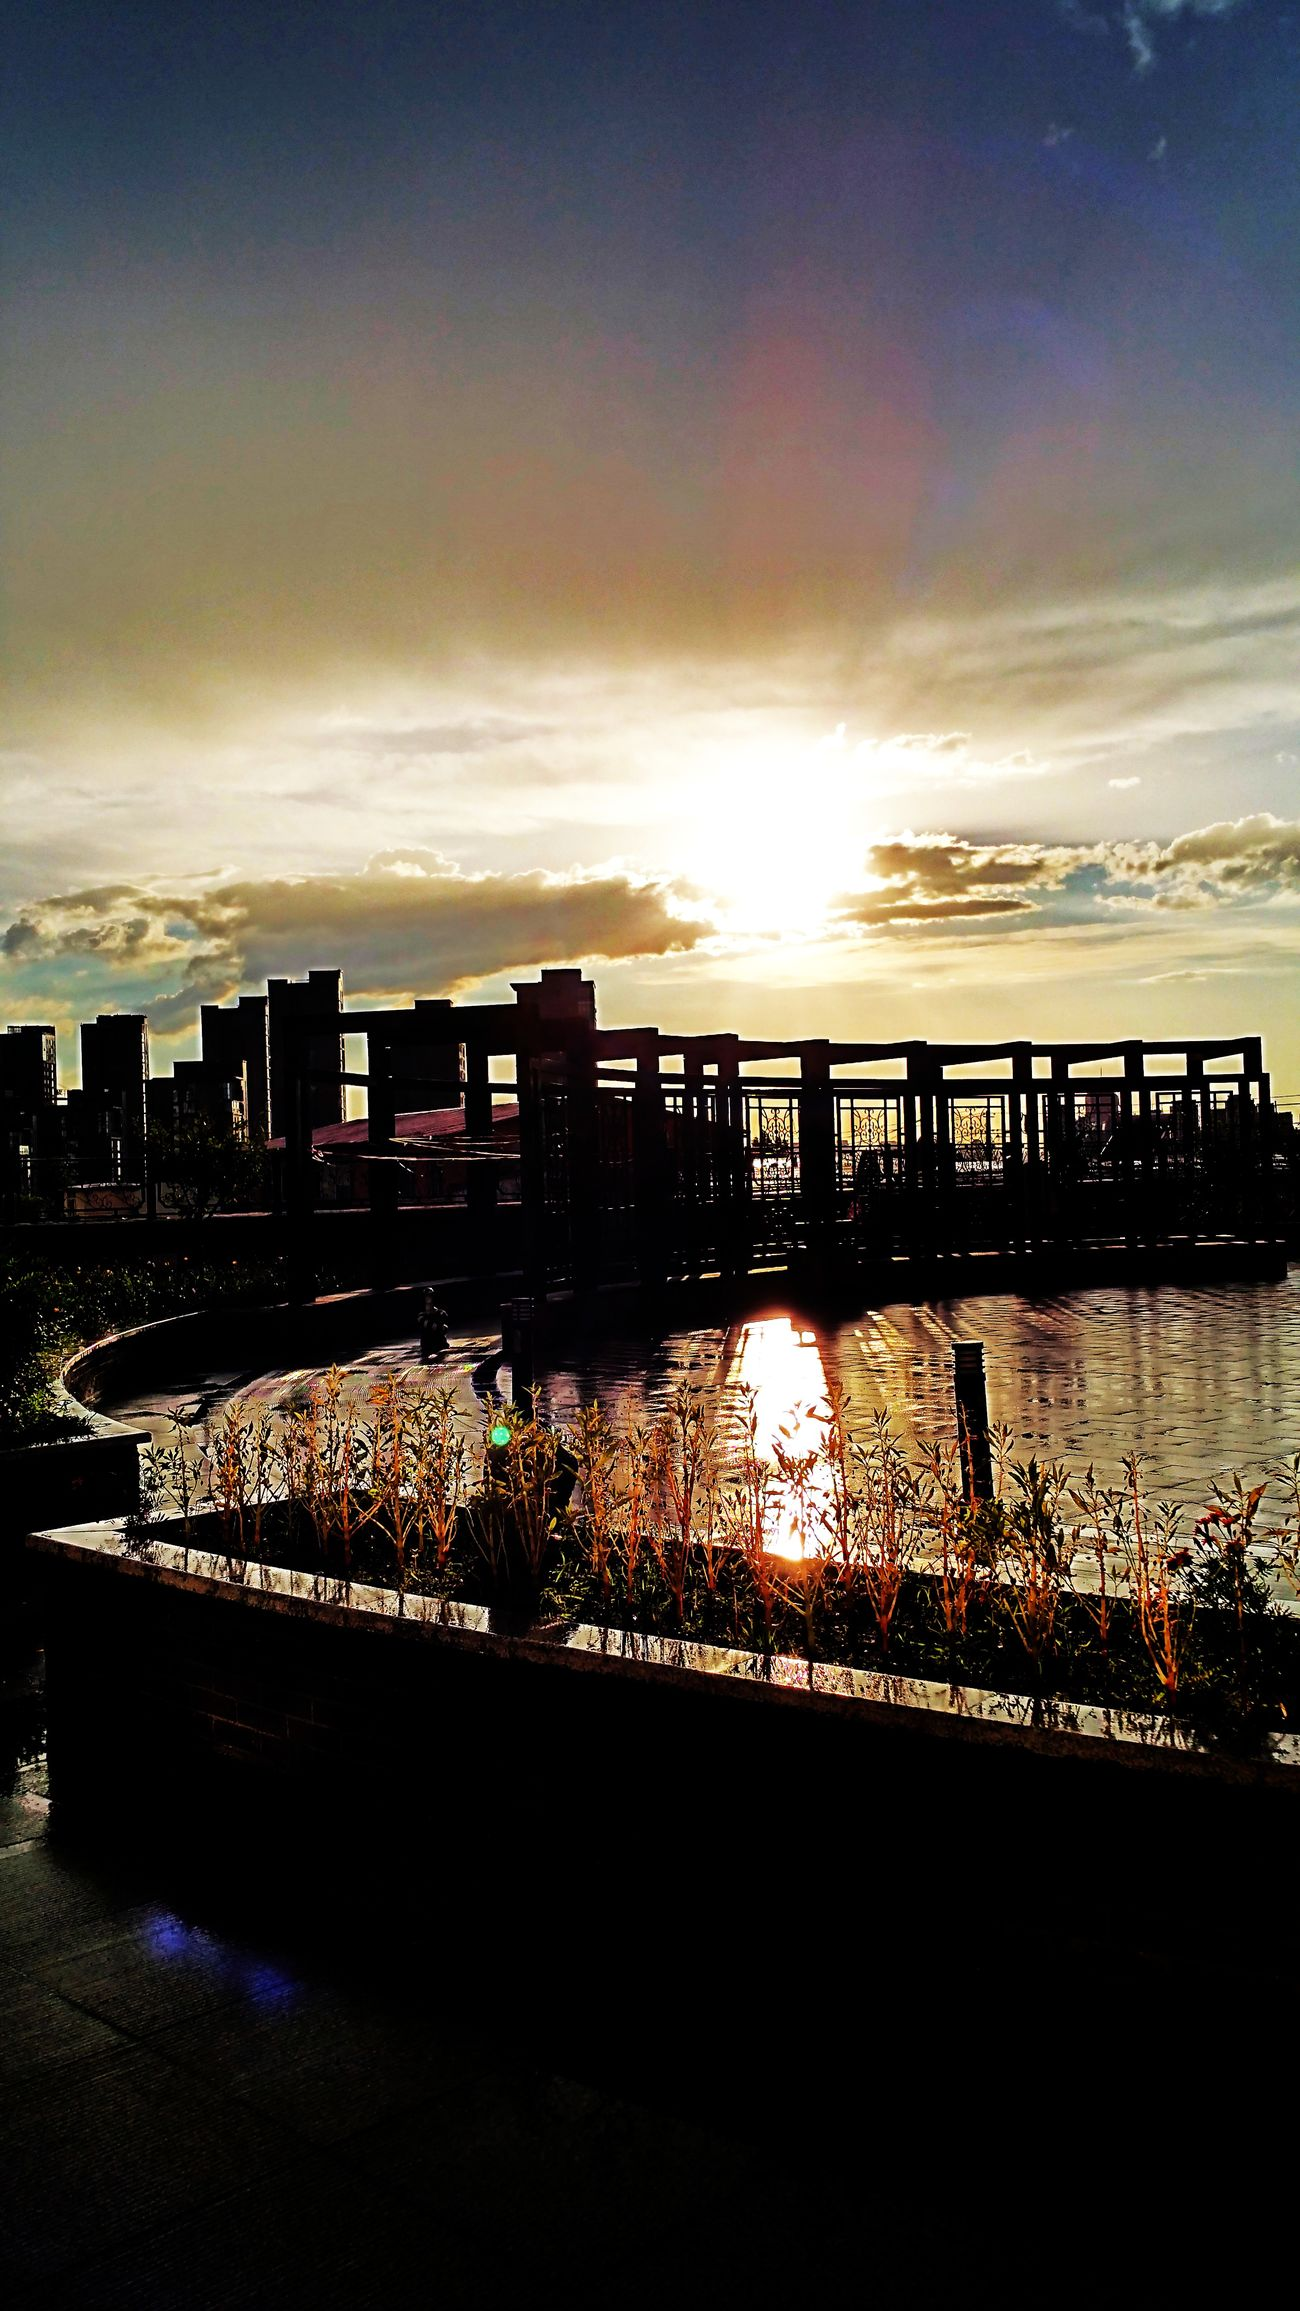 A song from the horizon! Water City Building Exterior Architecture Sunset Built Structure Illuminated Cityscape Sky Reflection Cloud - Sky River Cloud Scenics Outdoors Waterfront Nature Tranquil Scene No People City Life